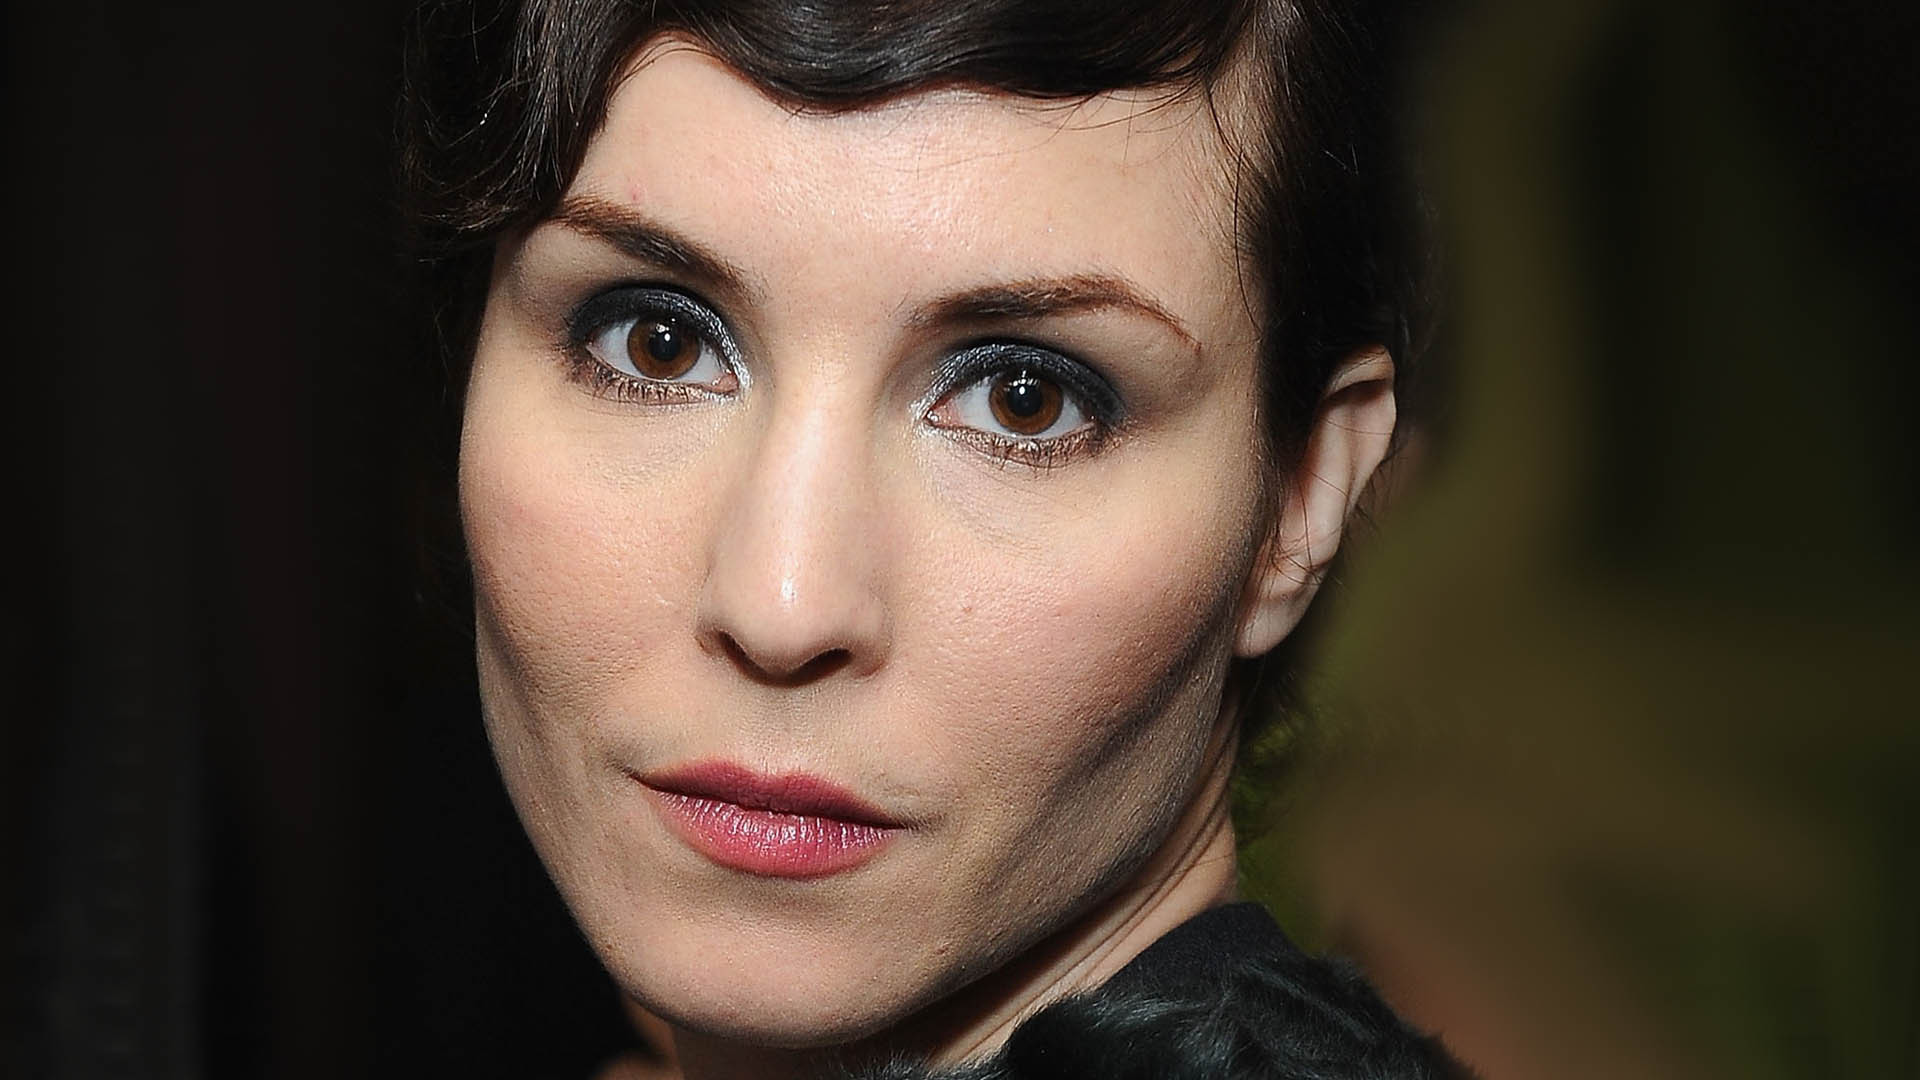 Noomi Rapace Wallpapers Images Photos Pictures Backgrounds